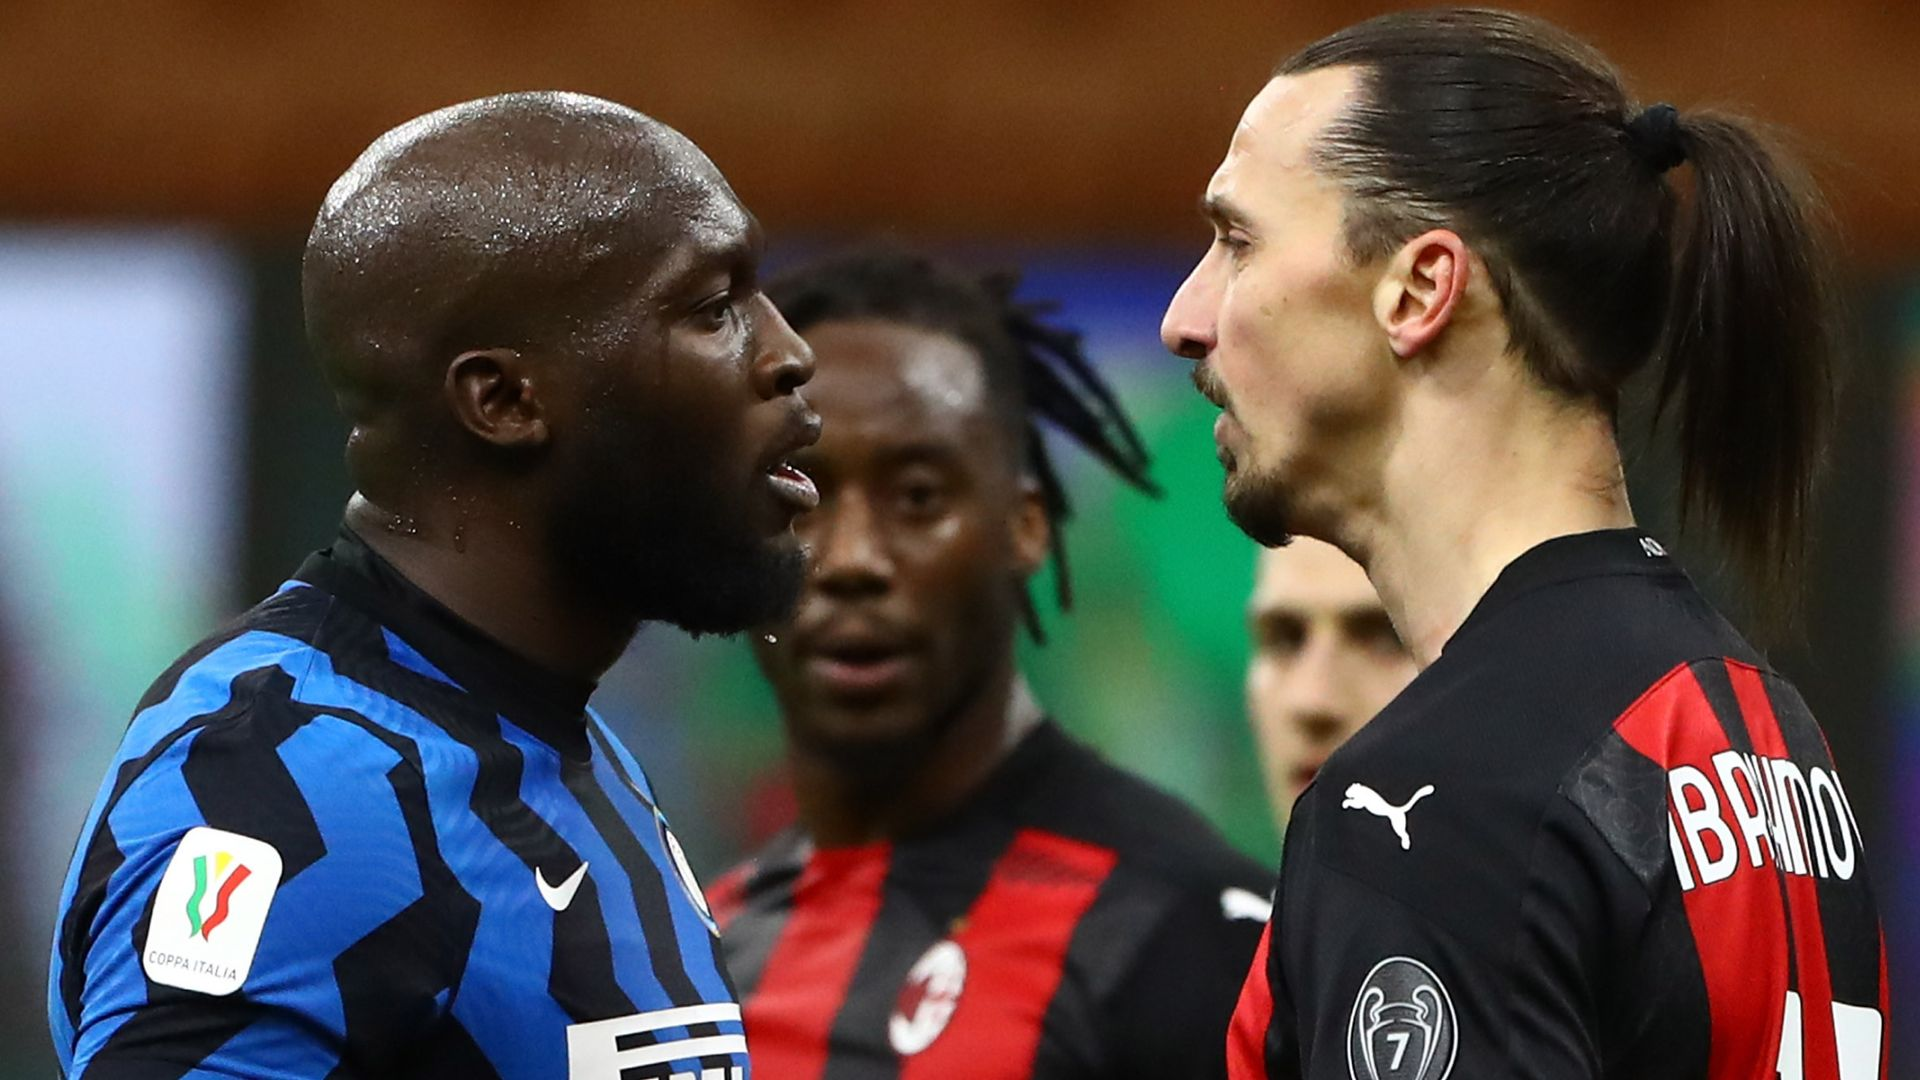 No place for racism, says Zlatan after Lukaku exchange